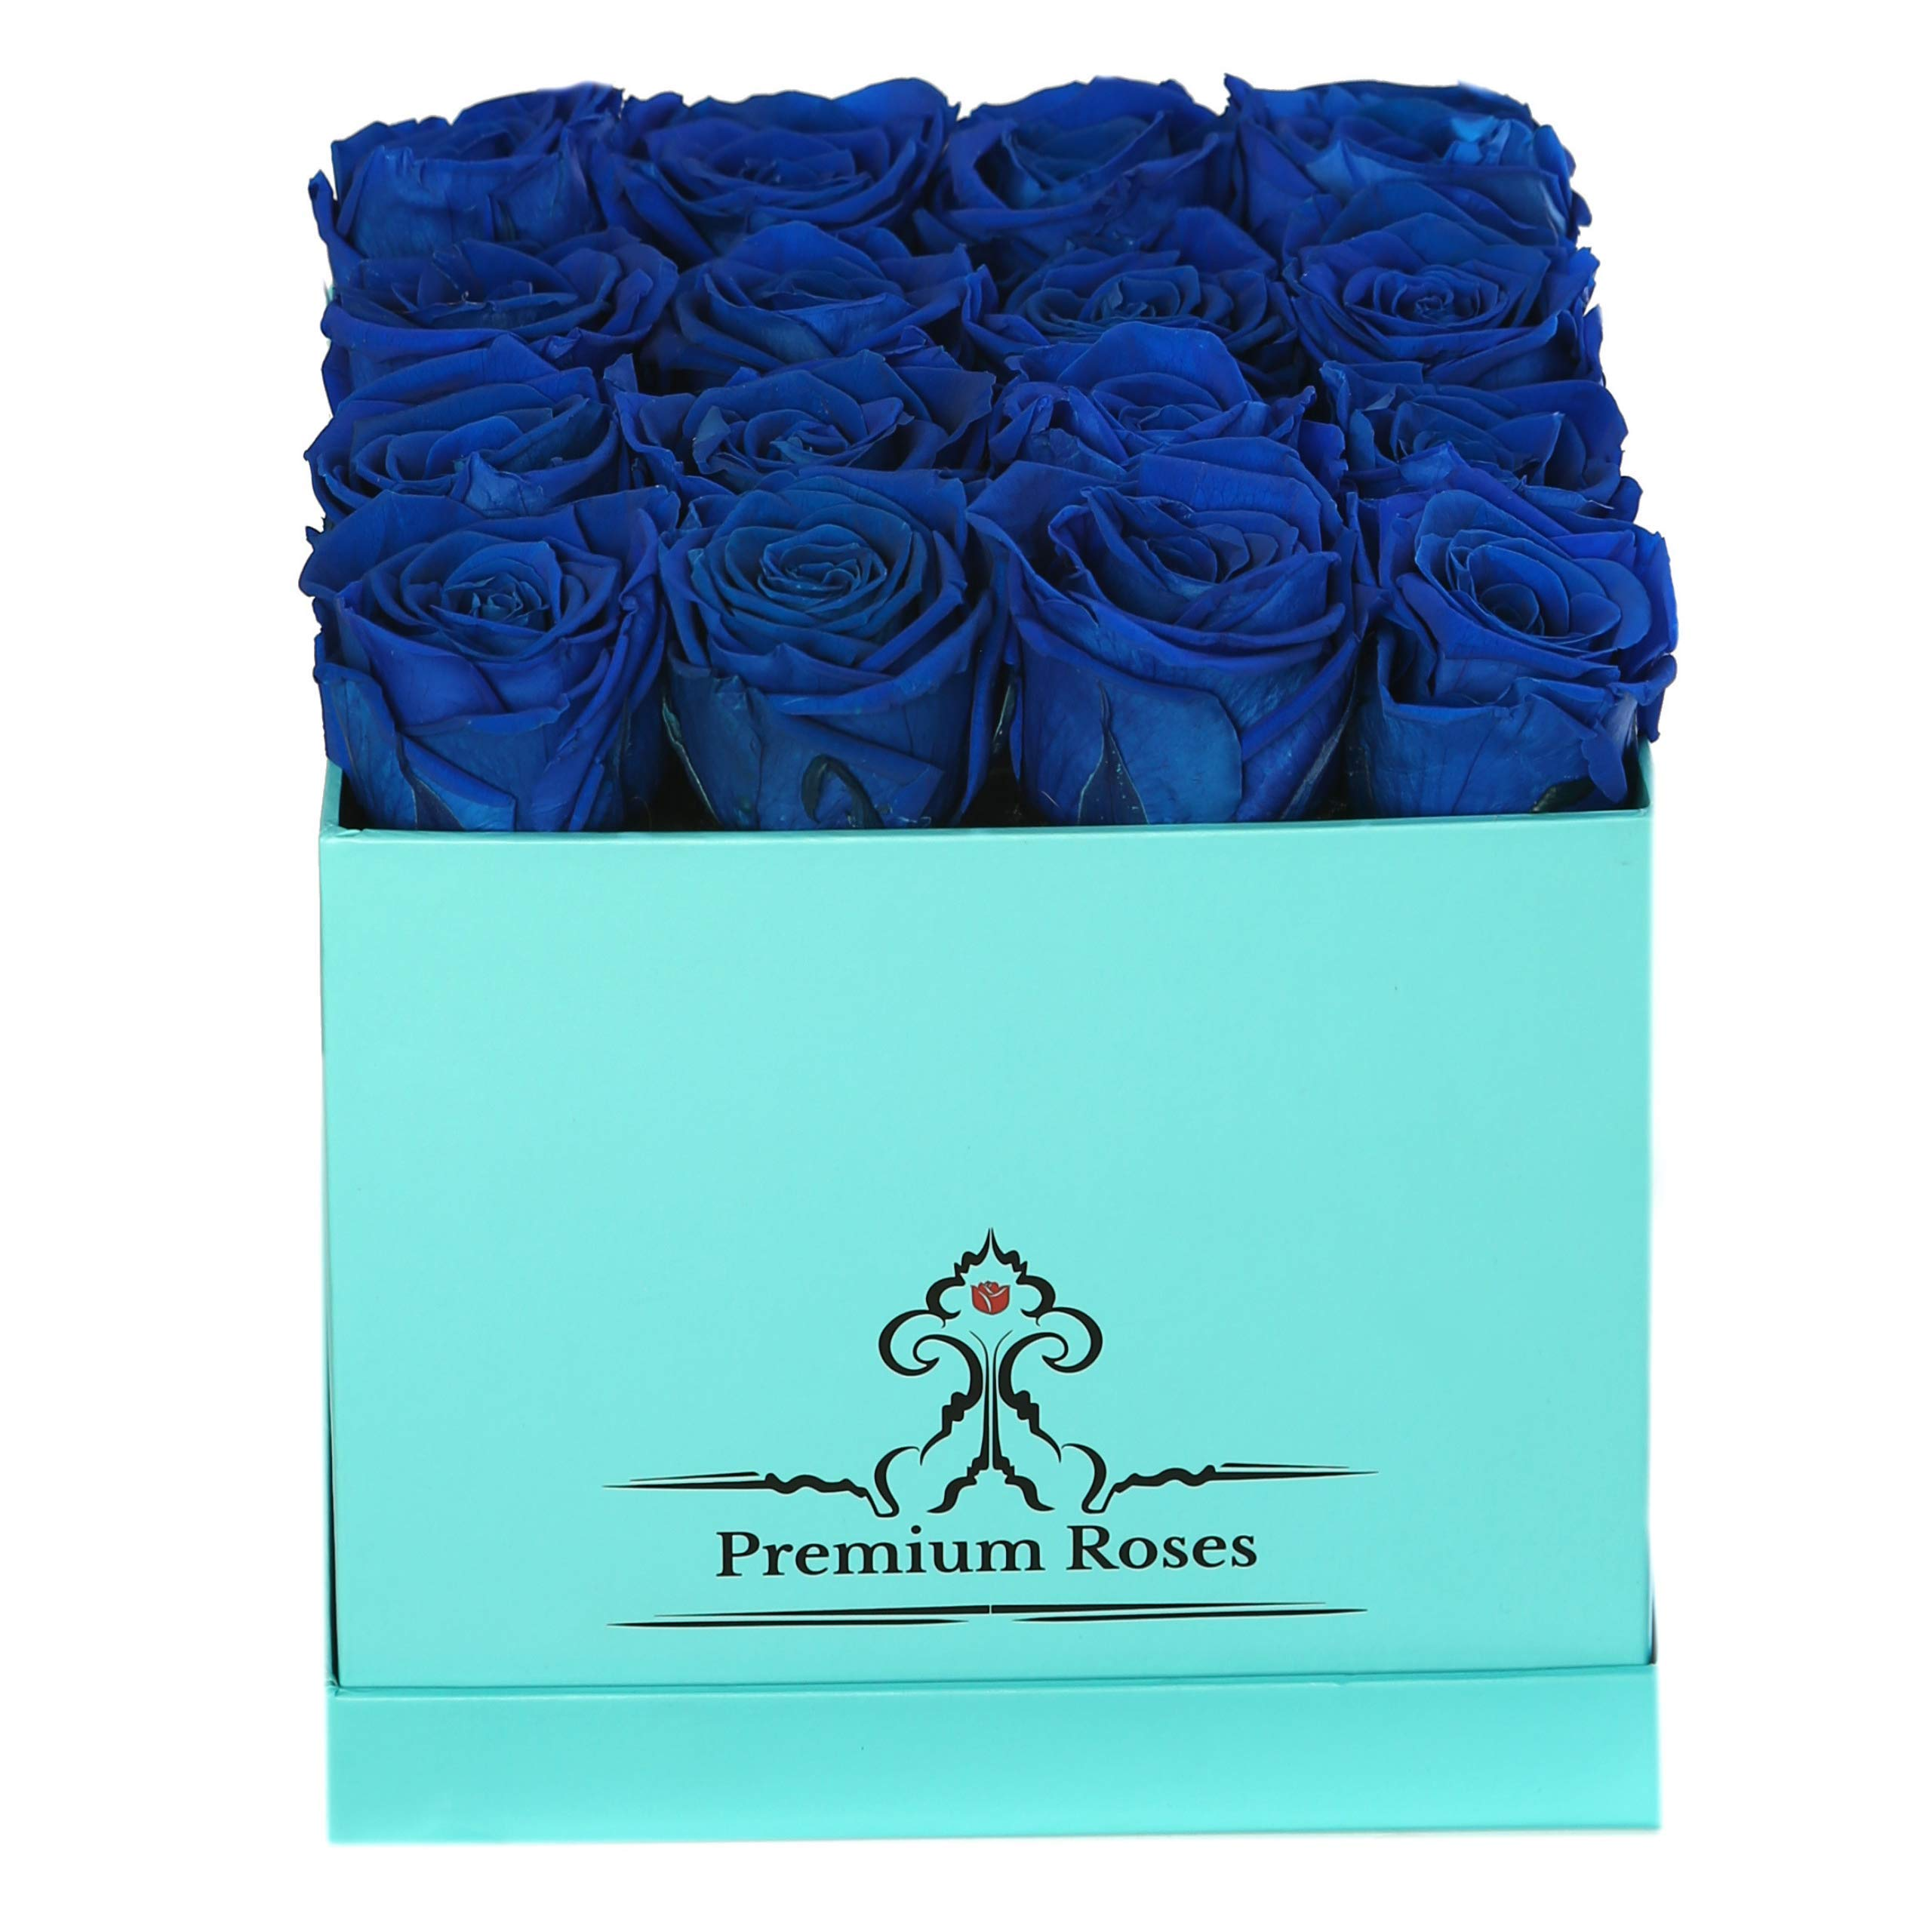 Premium Roses| Real Roses That Last a Year | Fresh Flowers| Roses in a Box (Blue Box, Medium) by Premium Roses